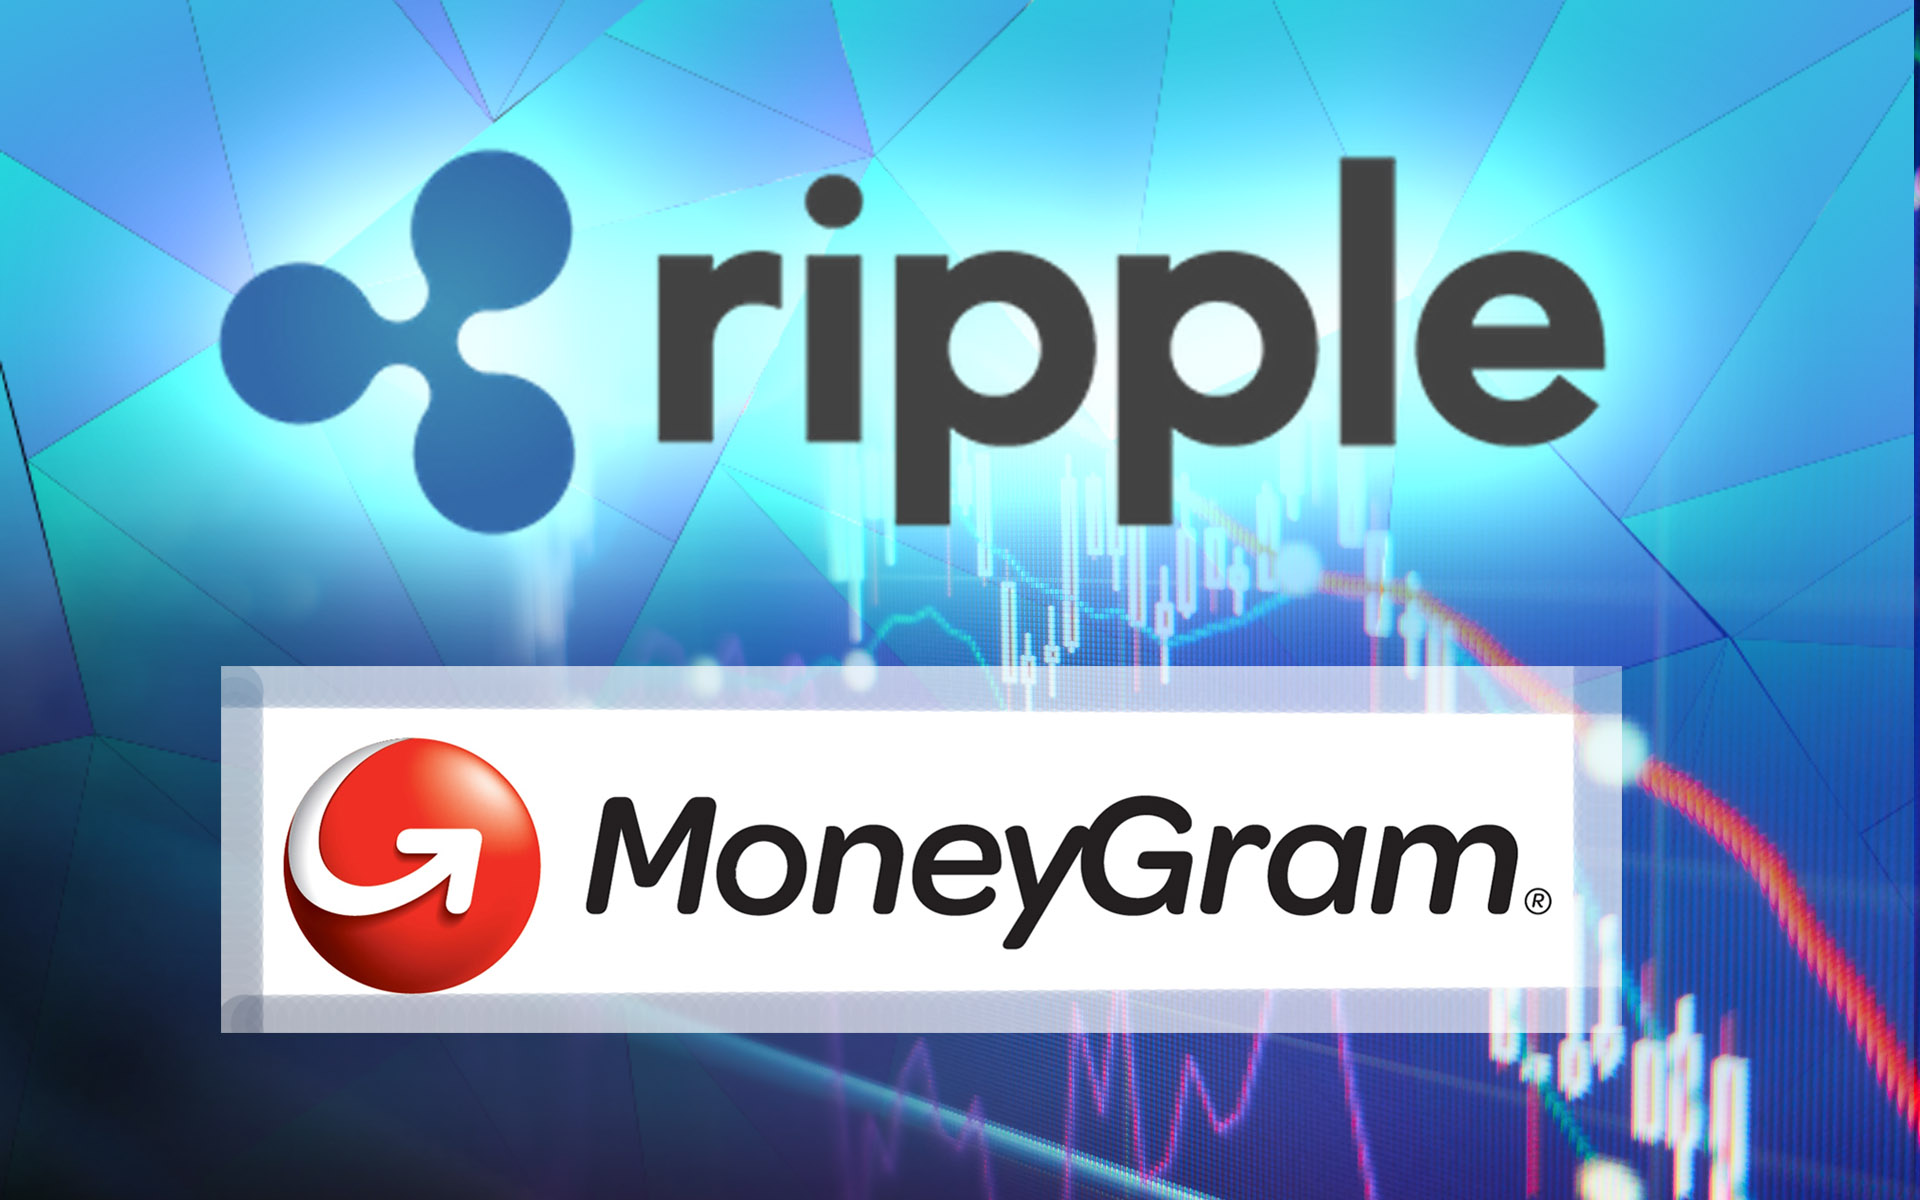 Moneygram aims to optimize and perfect XRP payments